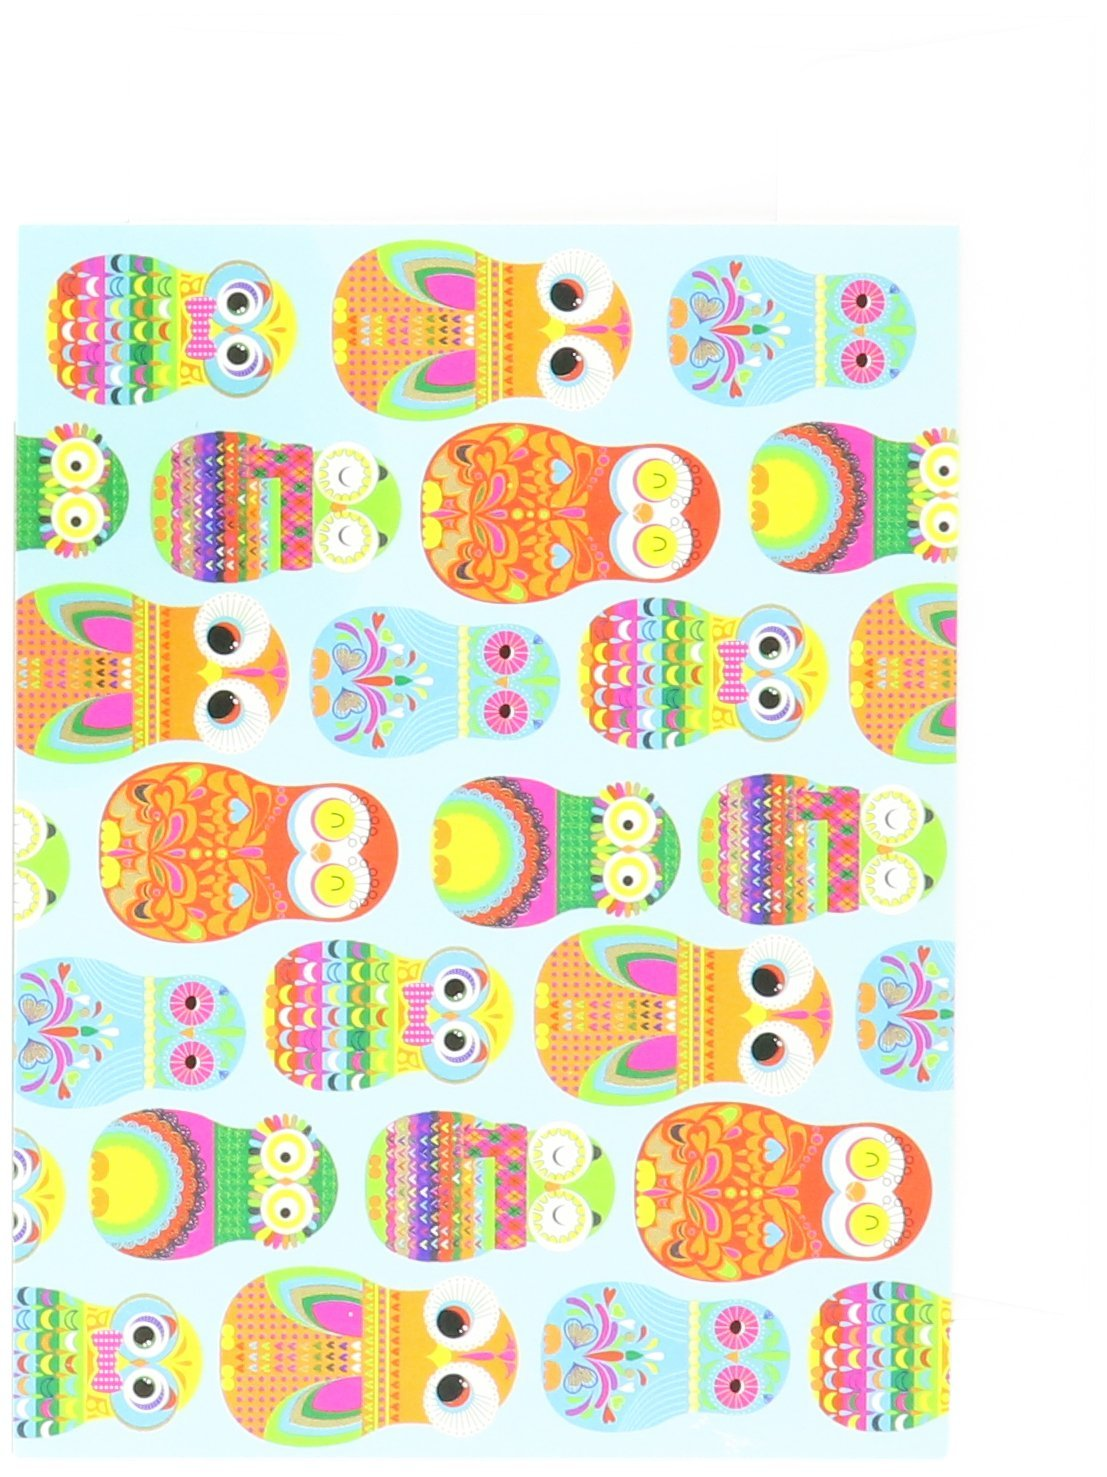 Amazon owls blank notecards 8 pack with envelopes office amazon owls blank notecards 8 pack with envelopes office products kristyandbryce Choice Image